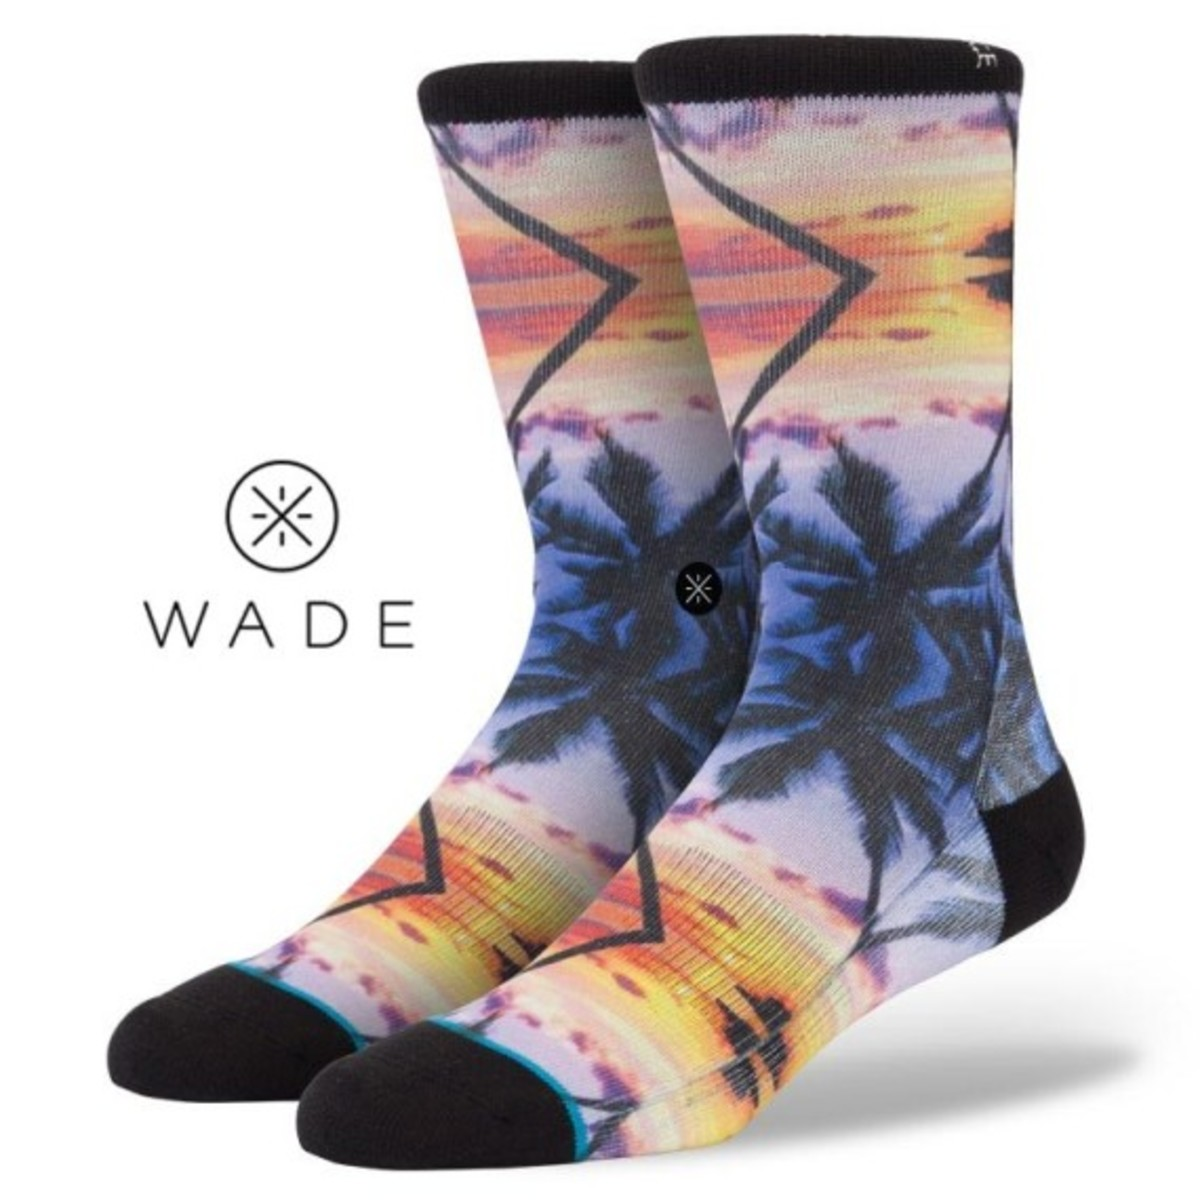 Dwyane Wade x Stance Socks – Summer 2014 Collection - 2